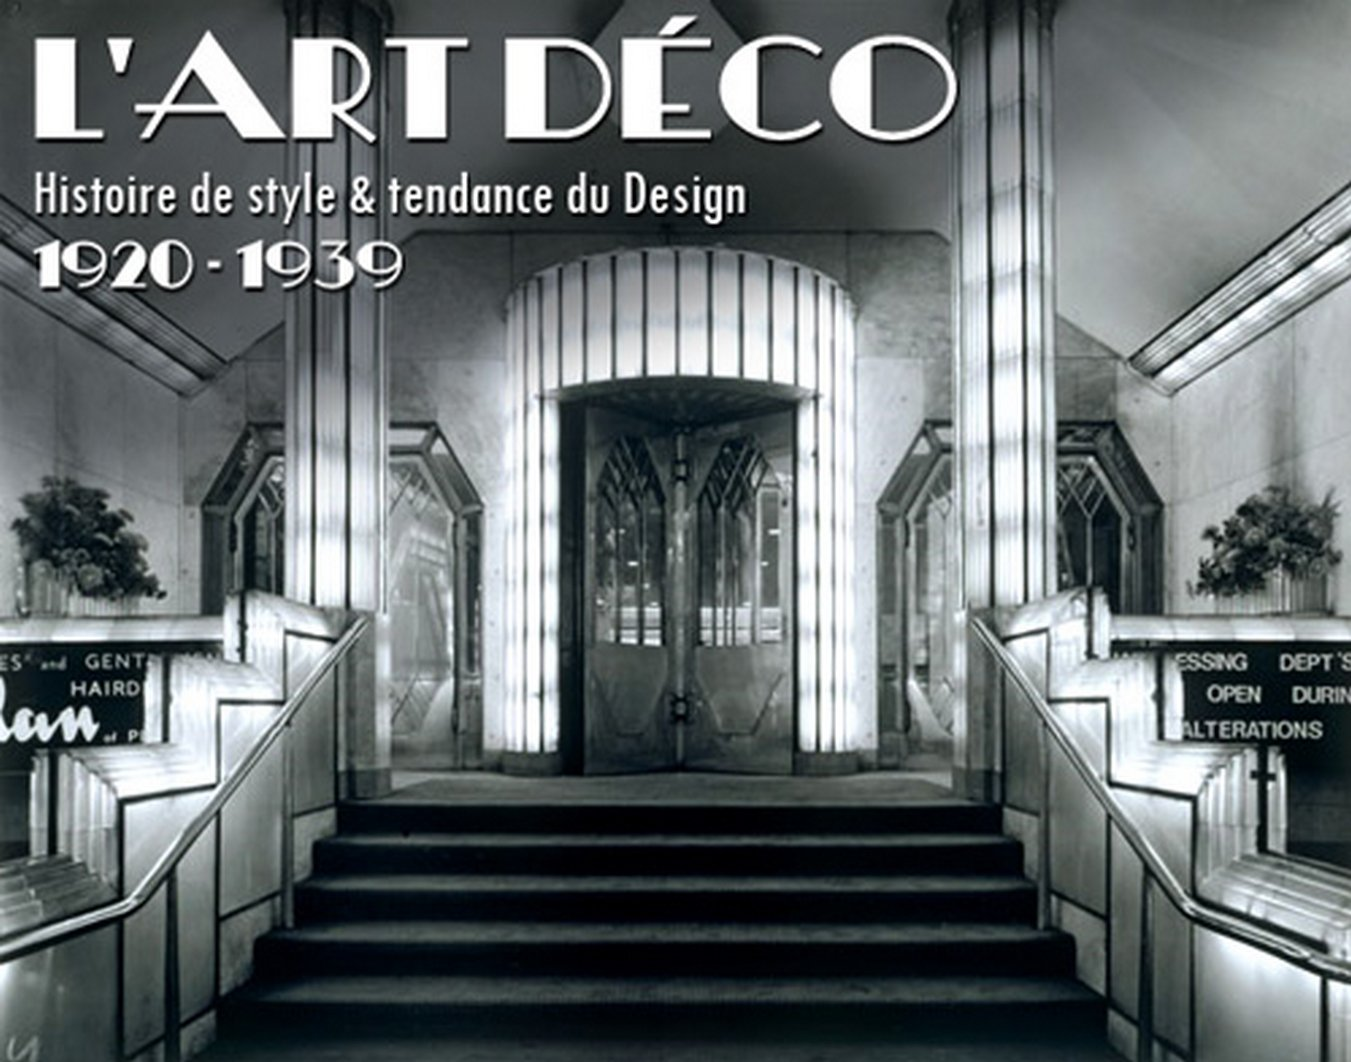 Decoration Art Deco Charme D Antan Blog De Décoration Et De Brocante Boutique Le